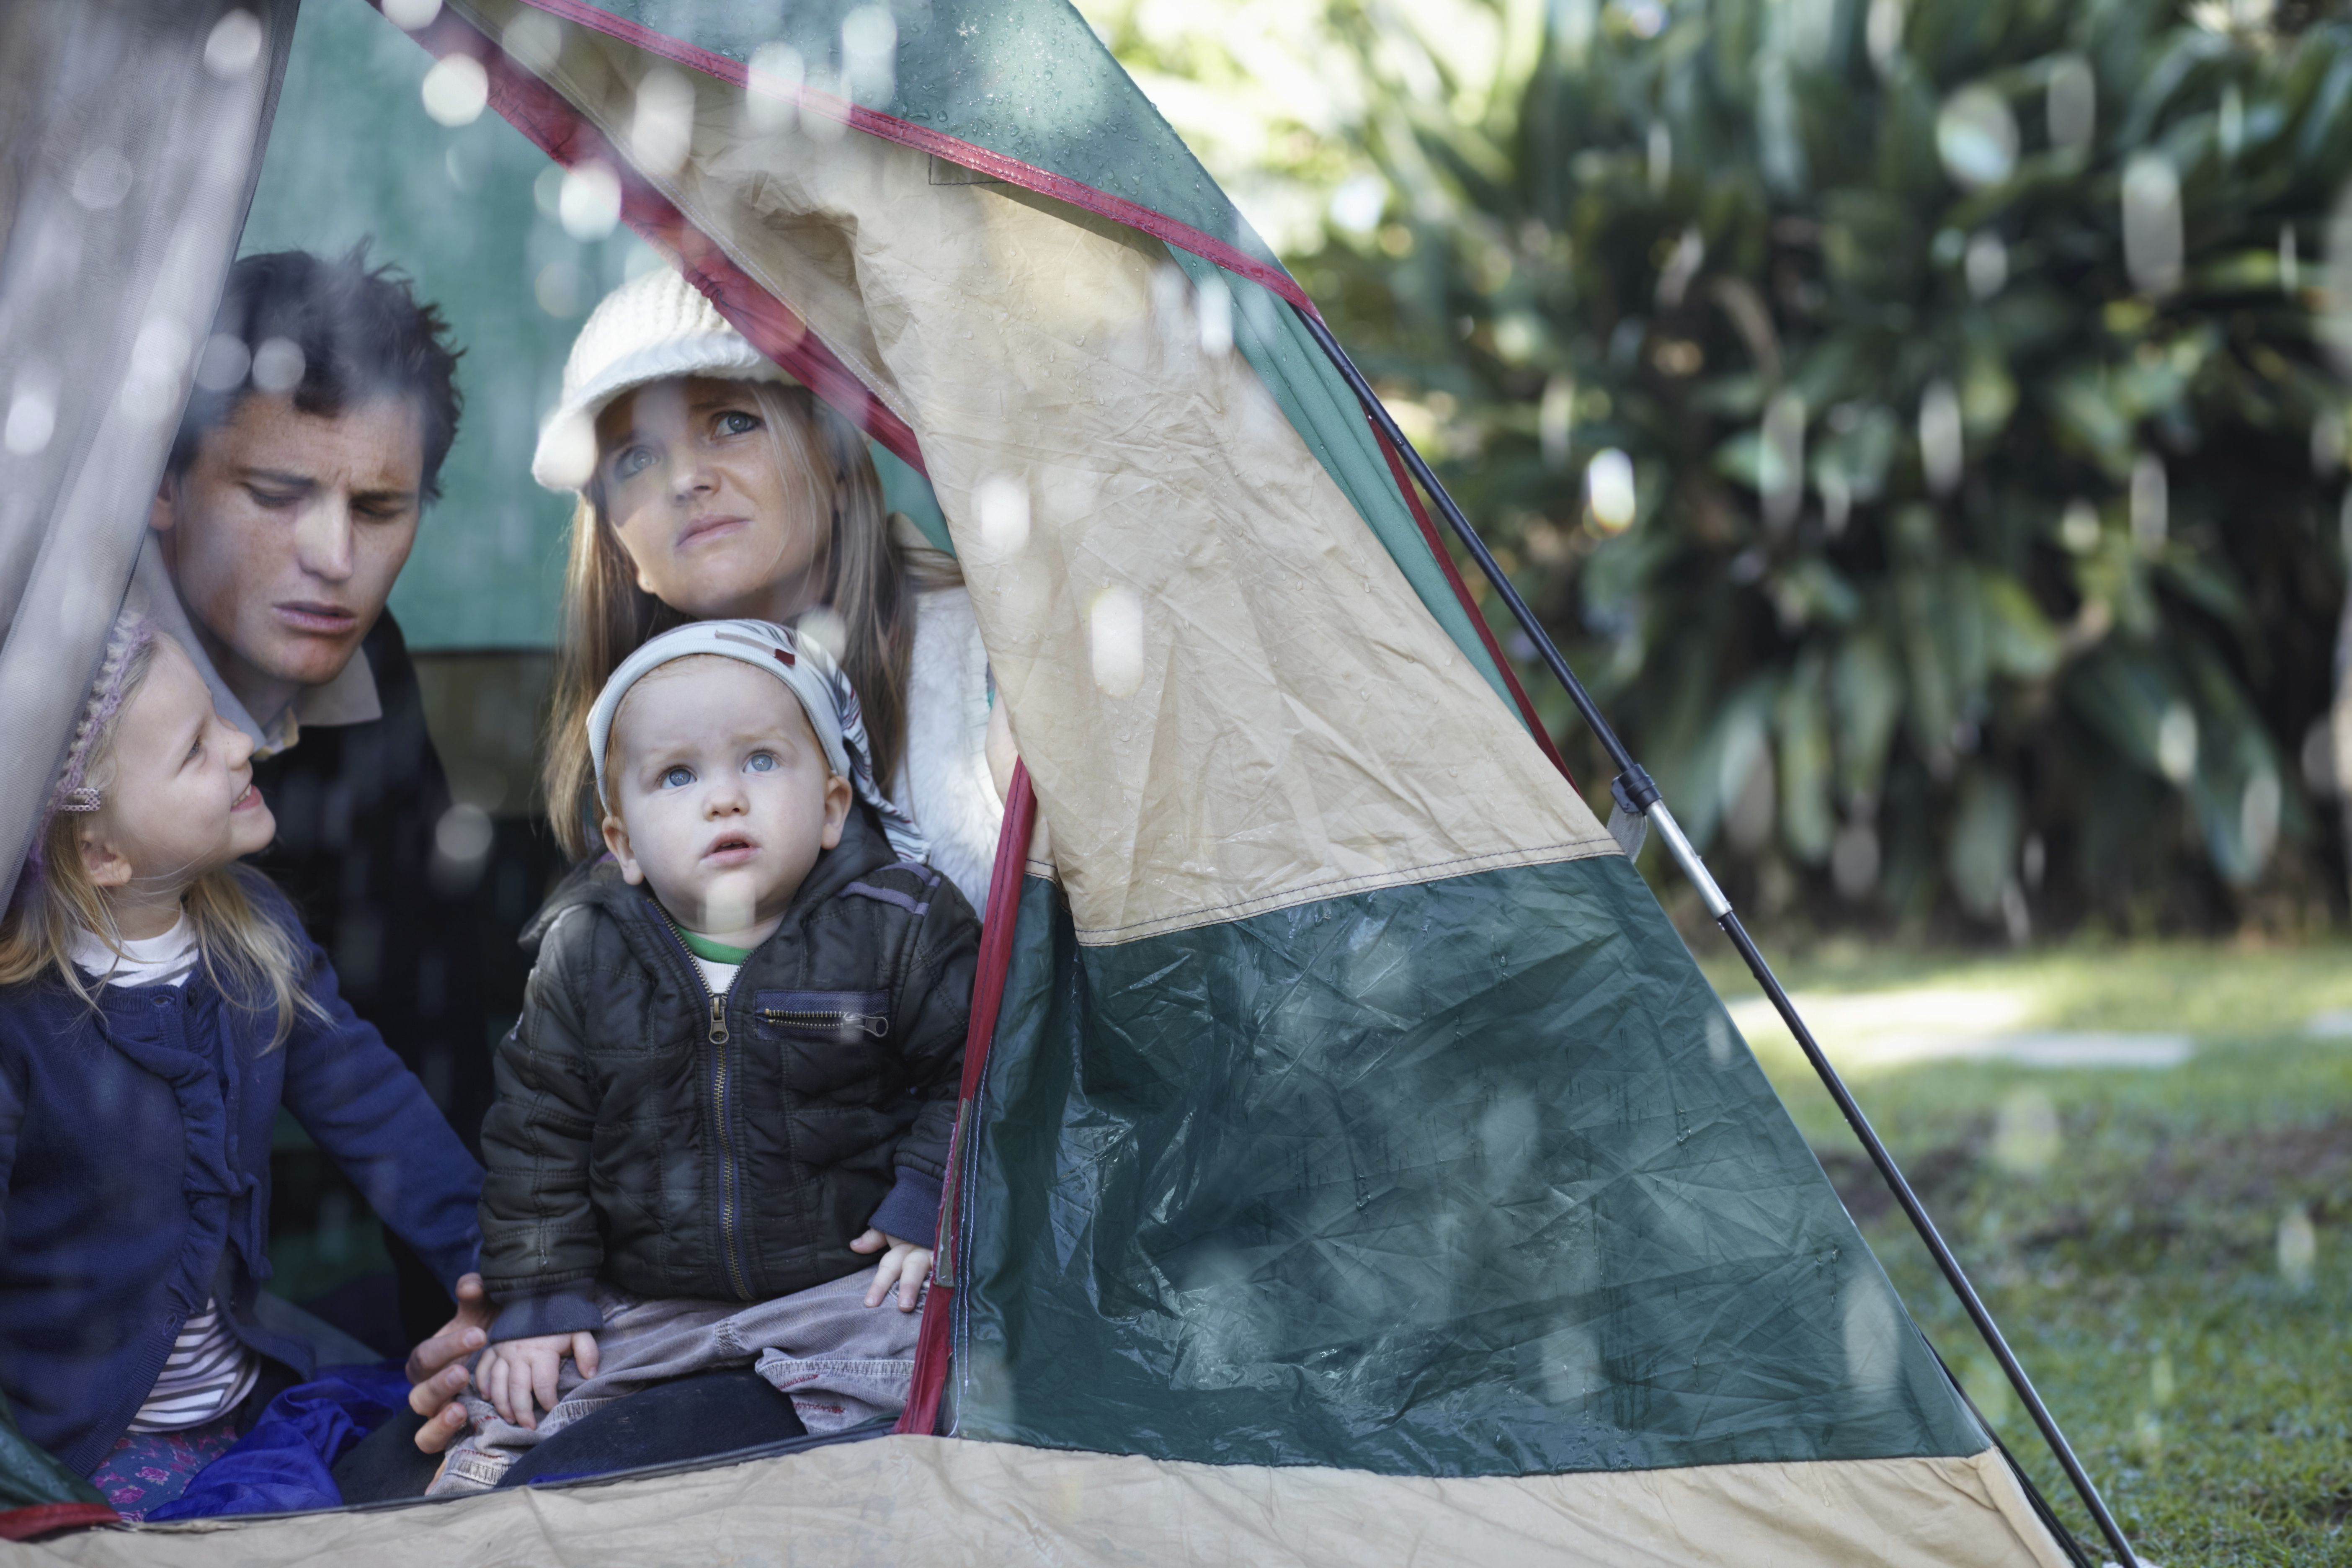 Camping Basics: How to Set Up a Campsite